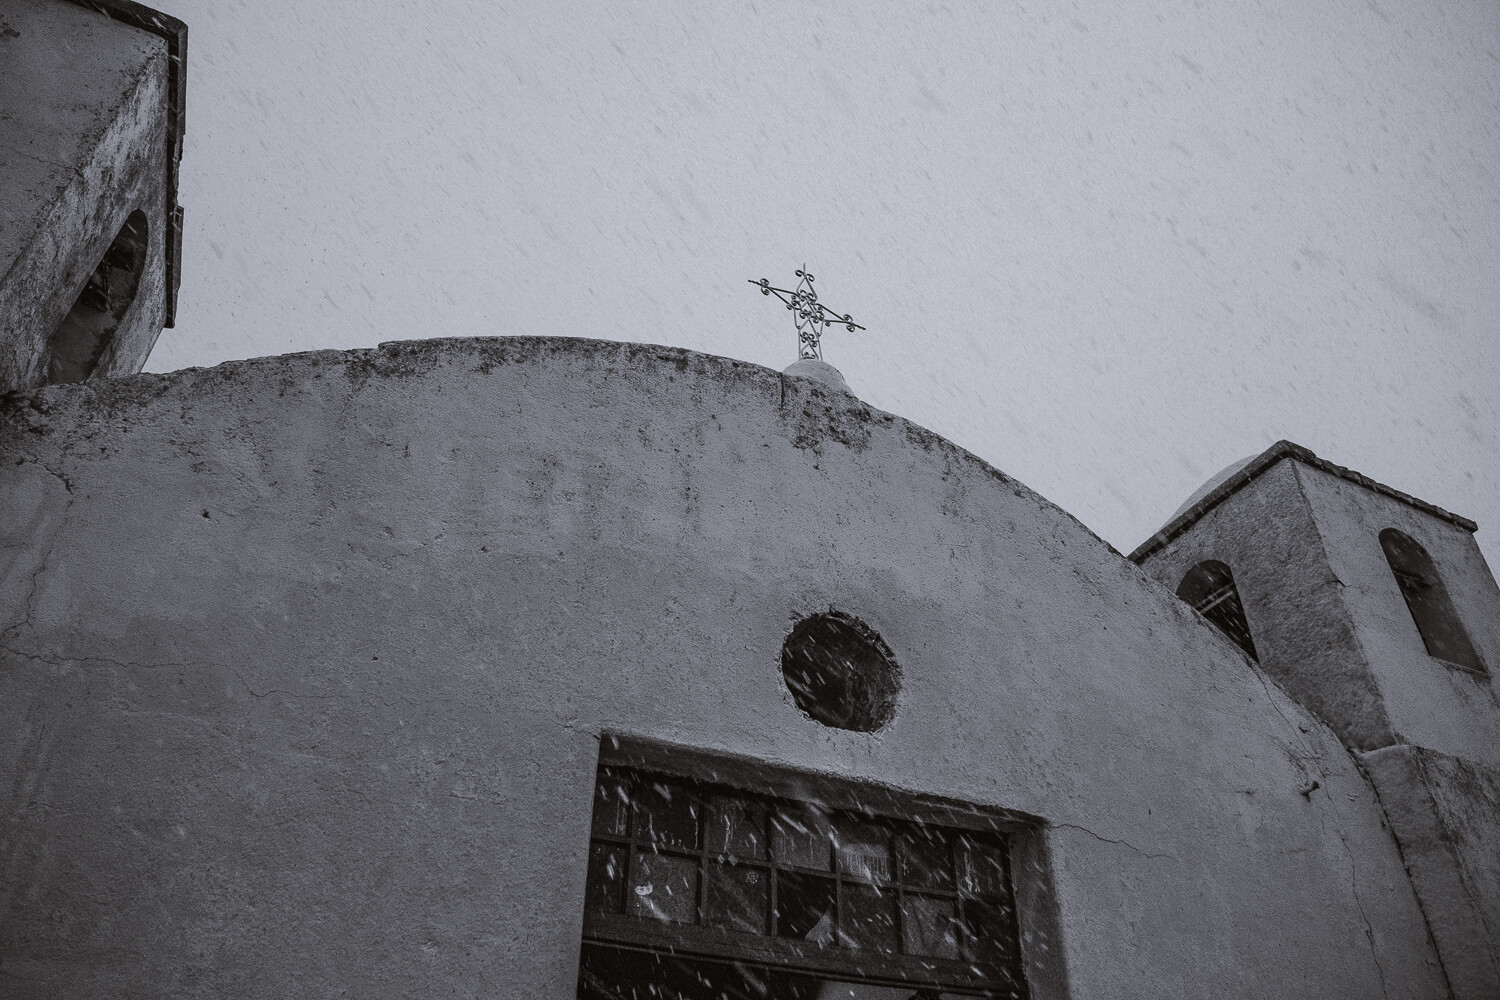 """Blizzard at a church in the Andes. Travel photography and guide by © Natasha Lequepeys for """"And Then I Met Yoko"""". #peru #sacredvalley #cusco #laketiticaca #belmondandeanexplorer #perurail #perutrain #luxurytravel #sleepertrain #photoblog #travelblog #travelphotography #fujifilm #andes #travel #travelperu #cuscotolaketiticaca #spiritofthelake #belmond #puno #southamerica"""